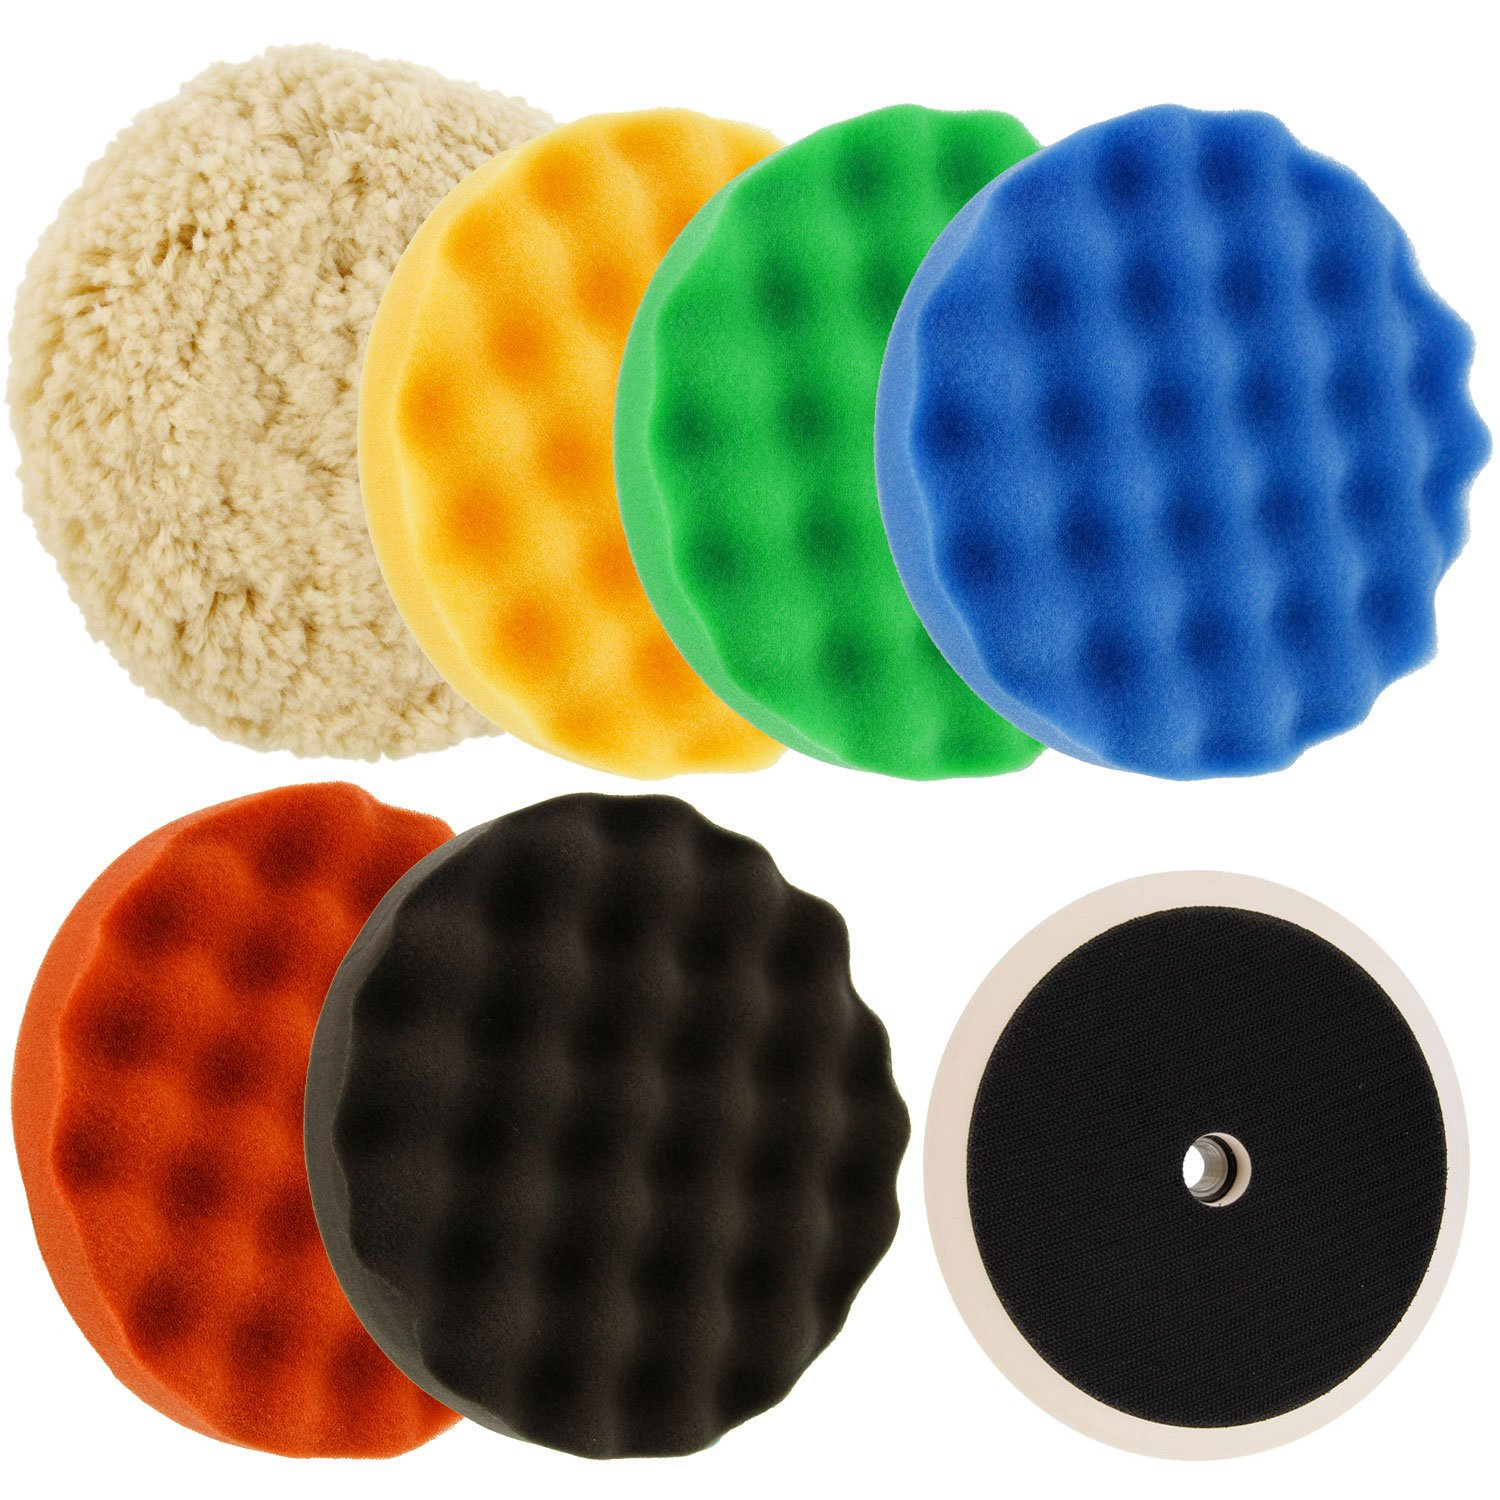 TCP Global Ultimate 6 Pad Buffing and Polishing Kit with 6-8'' Pads; 5 Waffle Foam & 1 Wool Grip Pads and a 5/8'' Threaded Polisher Grip Backing Plate by TCP Global